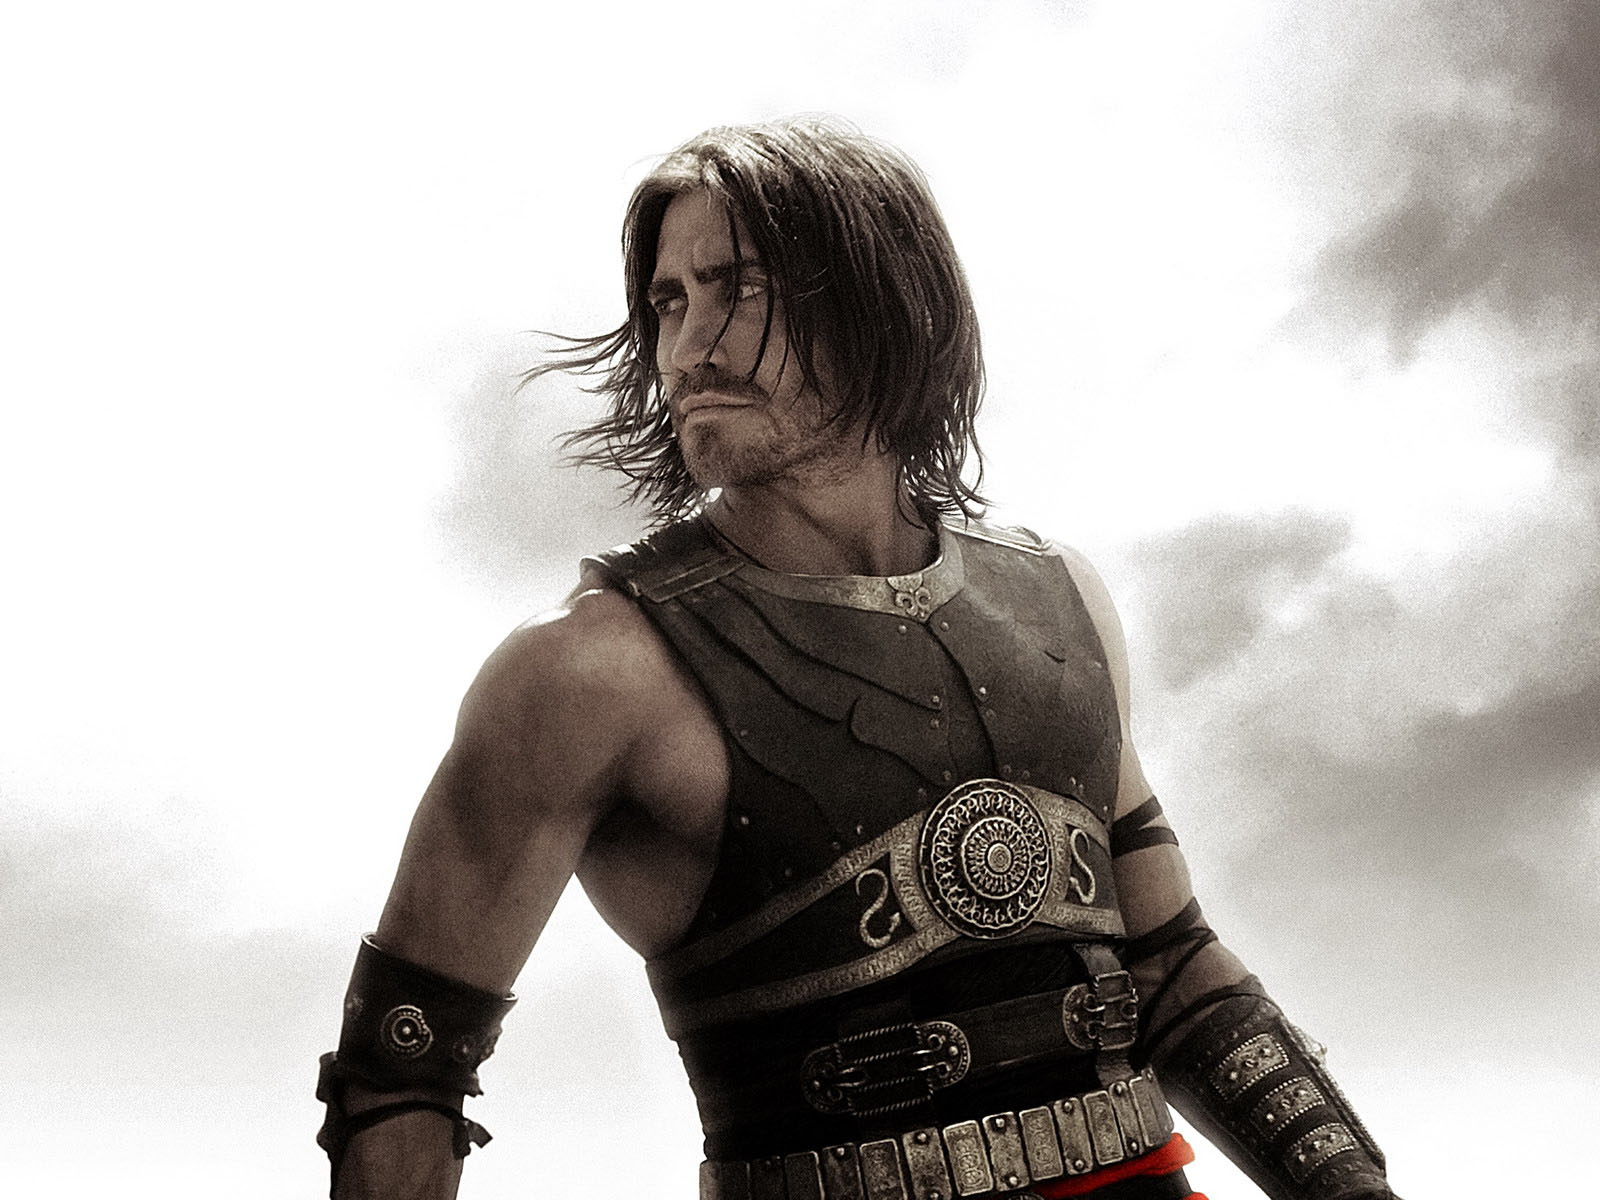 Prince of Persia The Sands of Time image IGN  - prince of persia the sands of time wallpapers